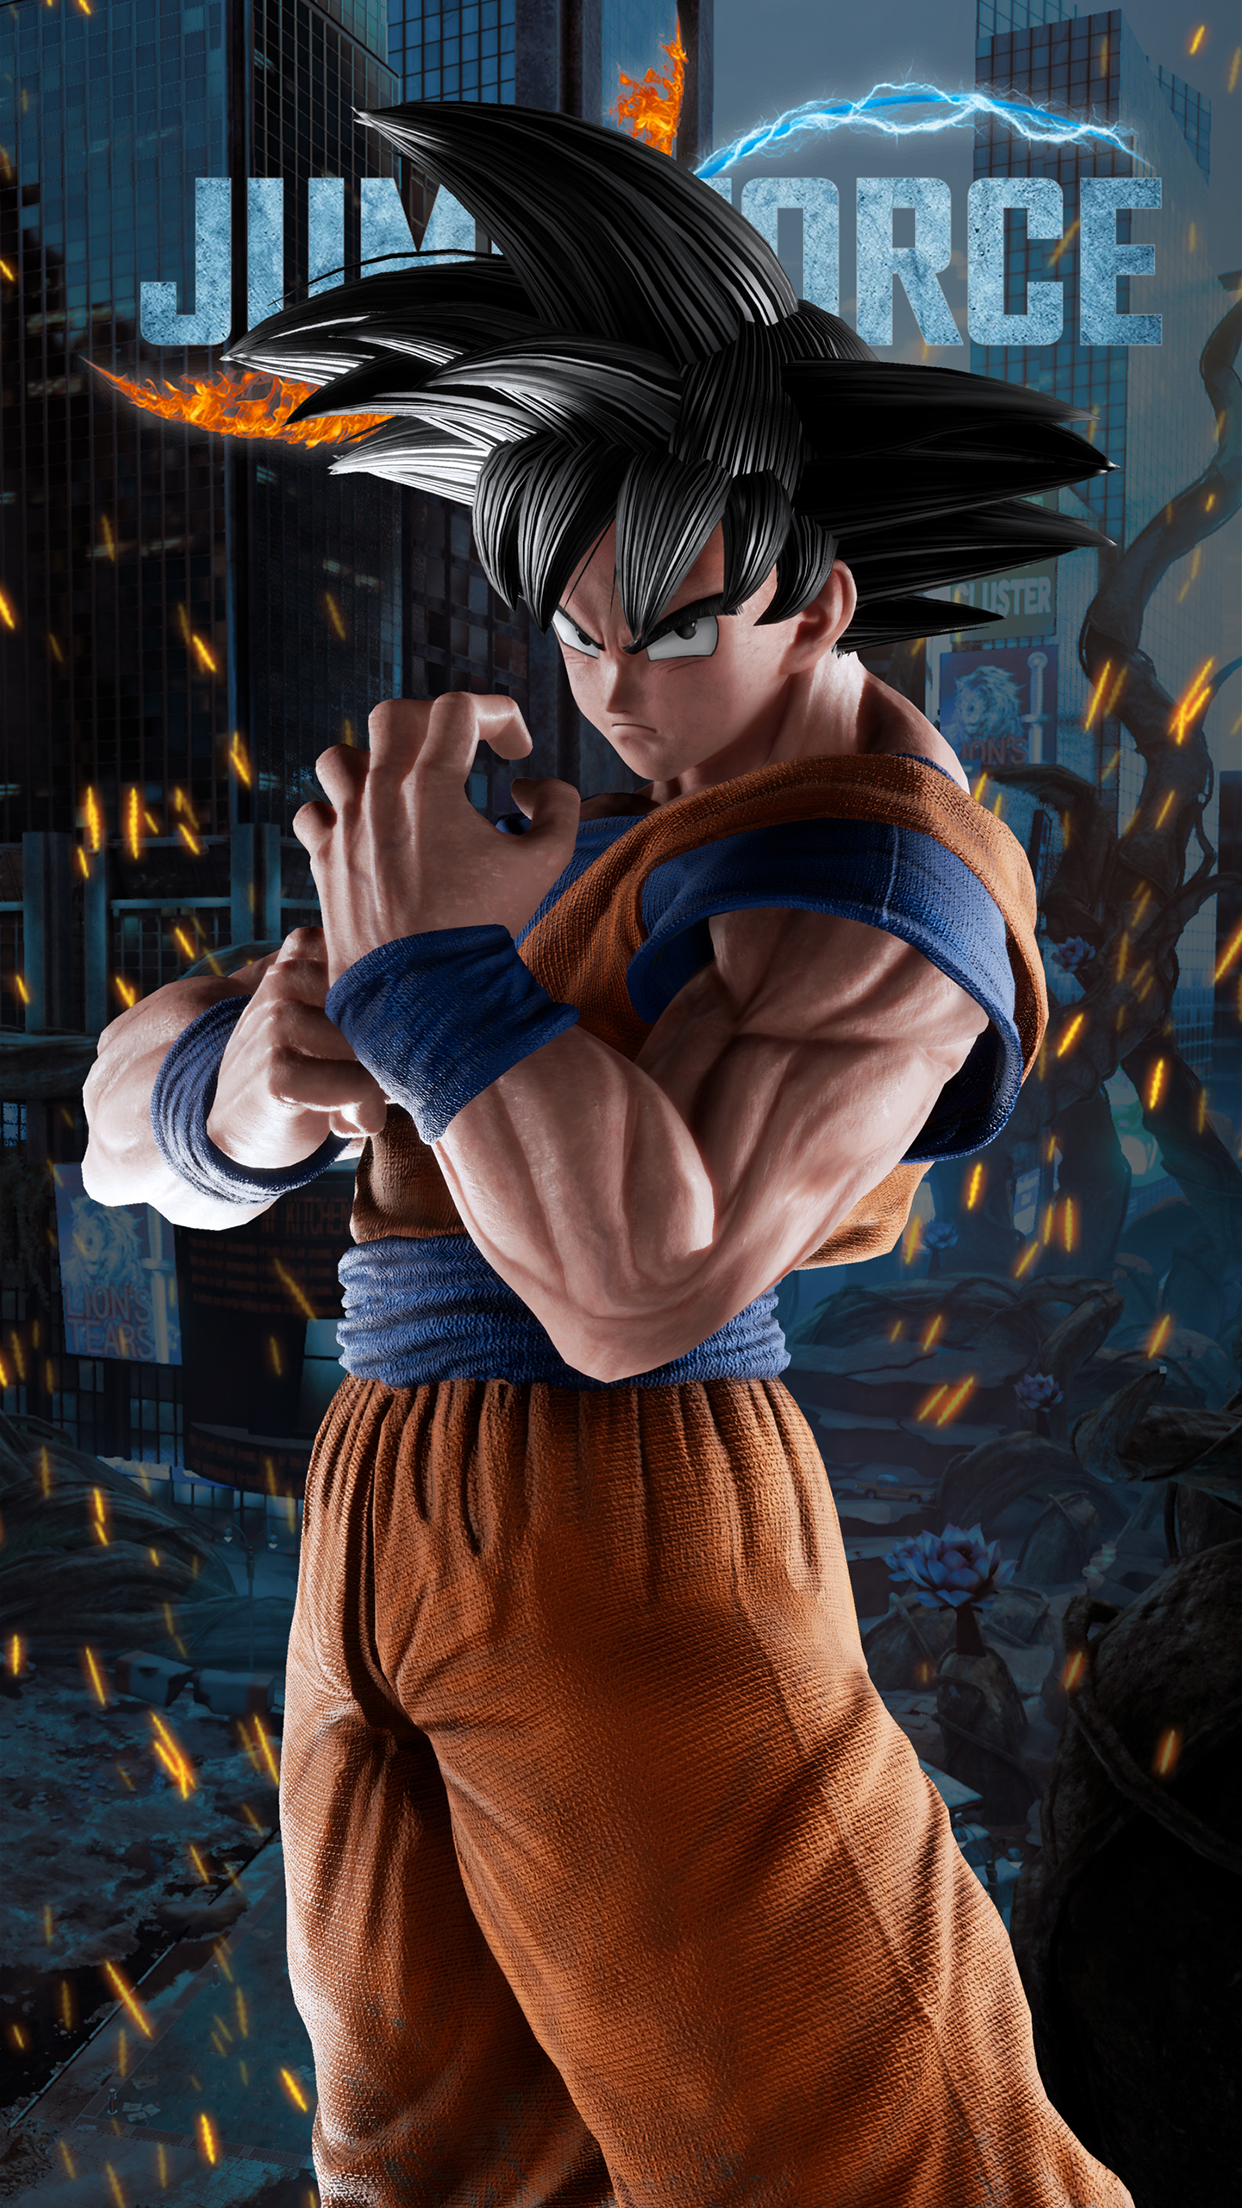 Animated Galaxy Wallpaper Jump Force Goku Wallpapers Cat With Monocle